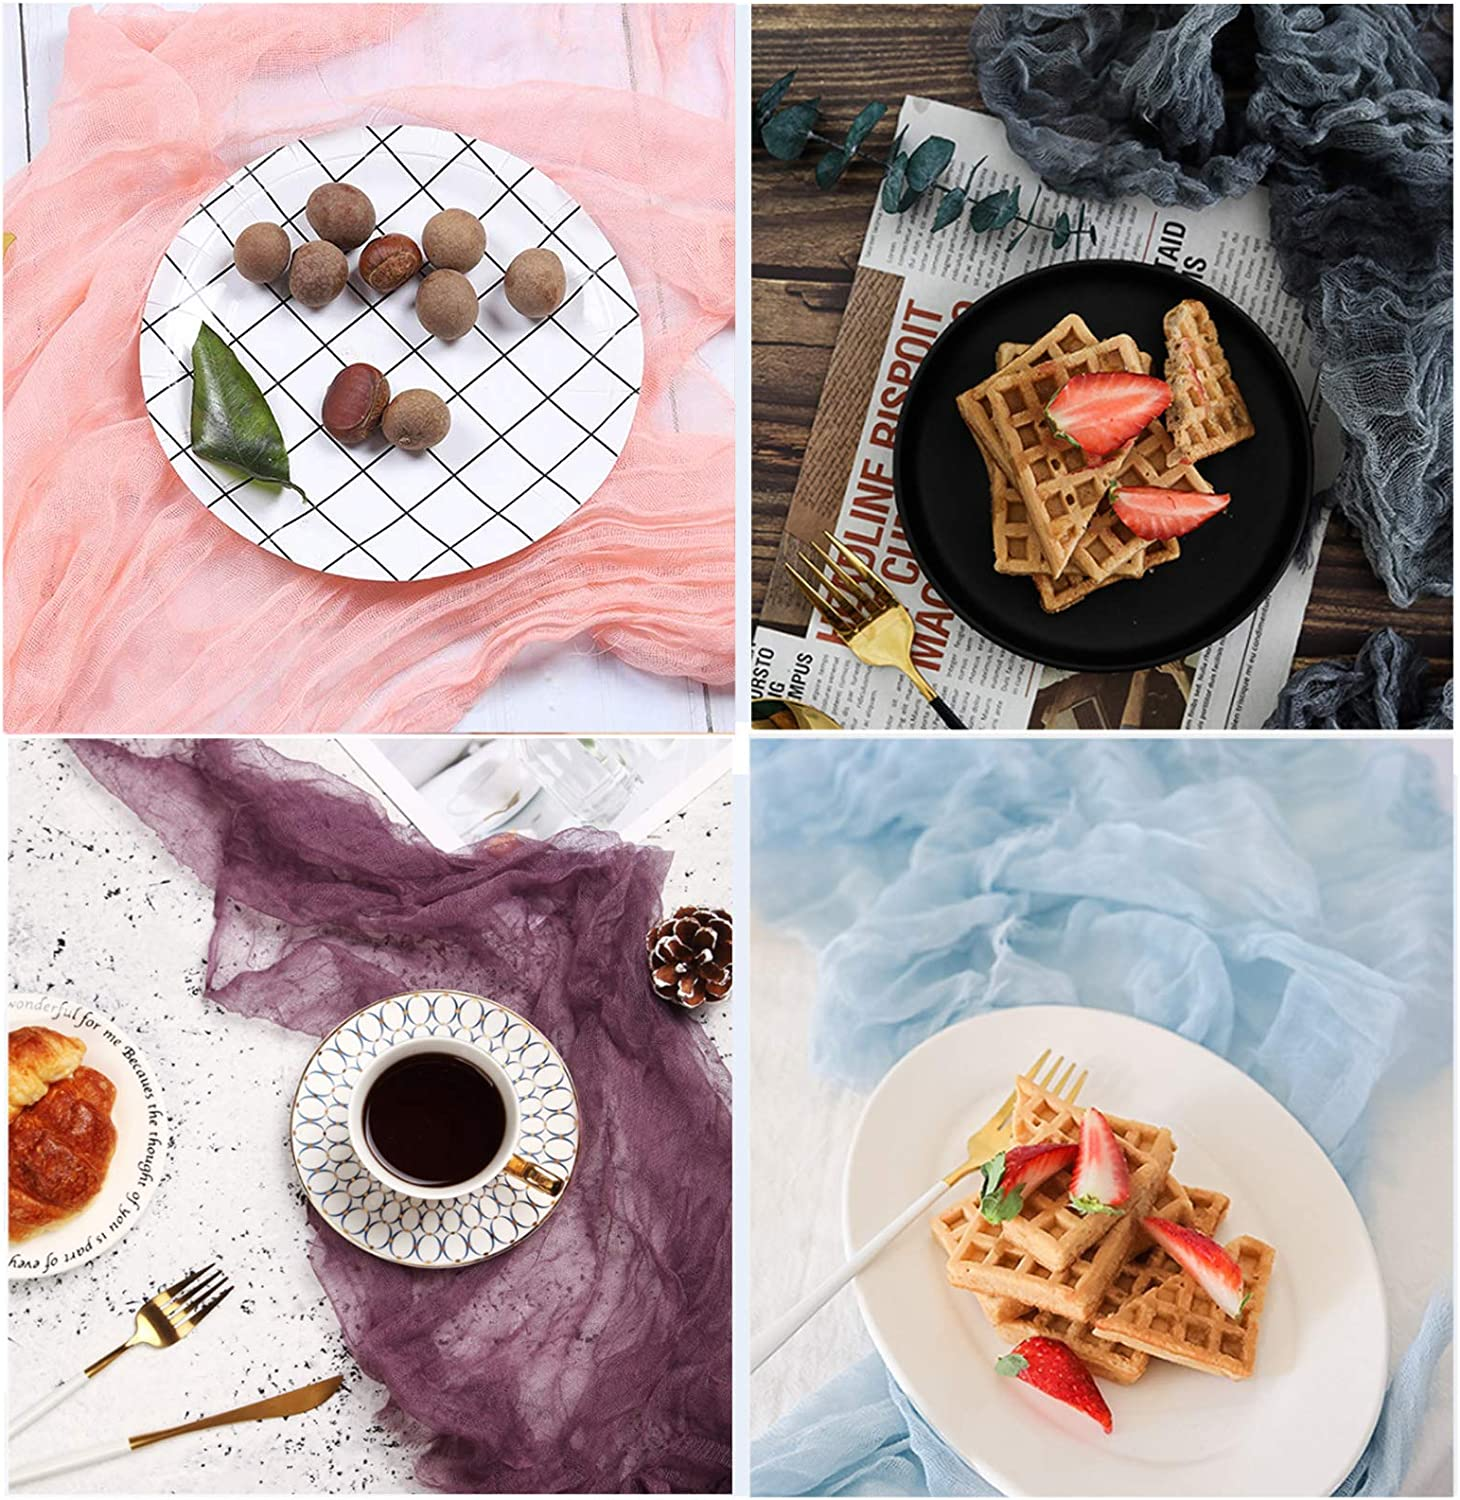 Gauze Napkin 4pieces 23x35 Inch (60 x 90cm) Cheesecloth Photography Props for Tabletop Food Product Flat Lay Backdrop Paper Photo Studio Background (Grey Blue & Reddish Purple & Sky Blue & Pink)